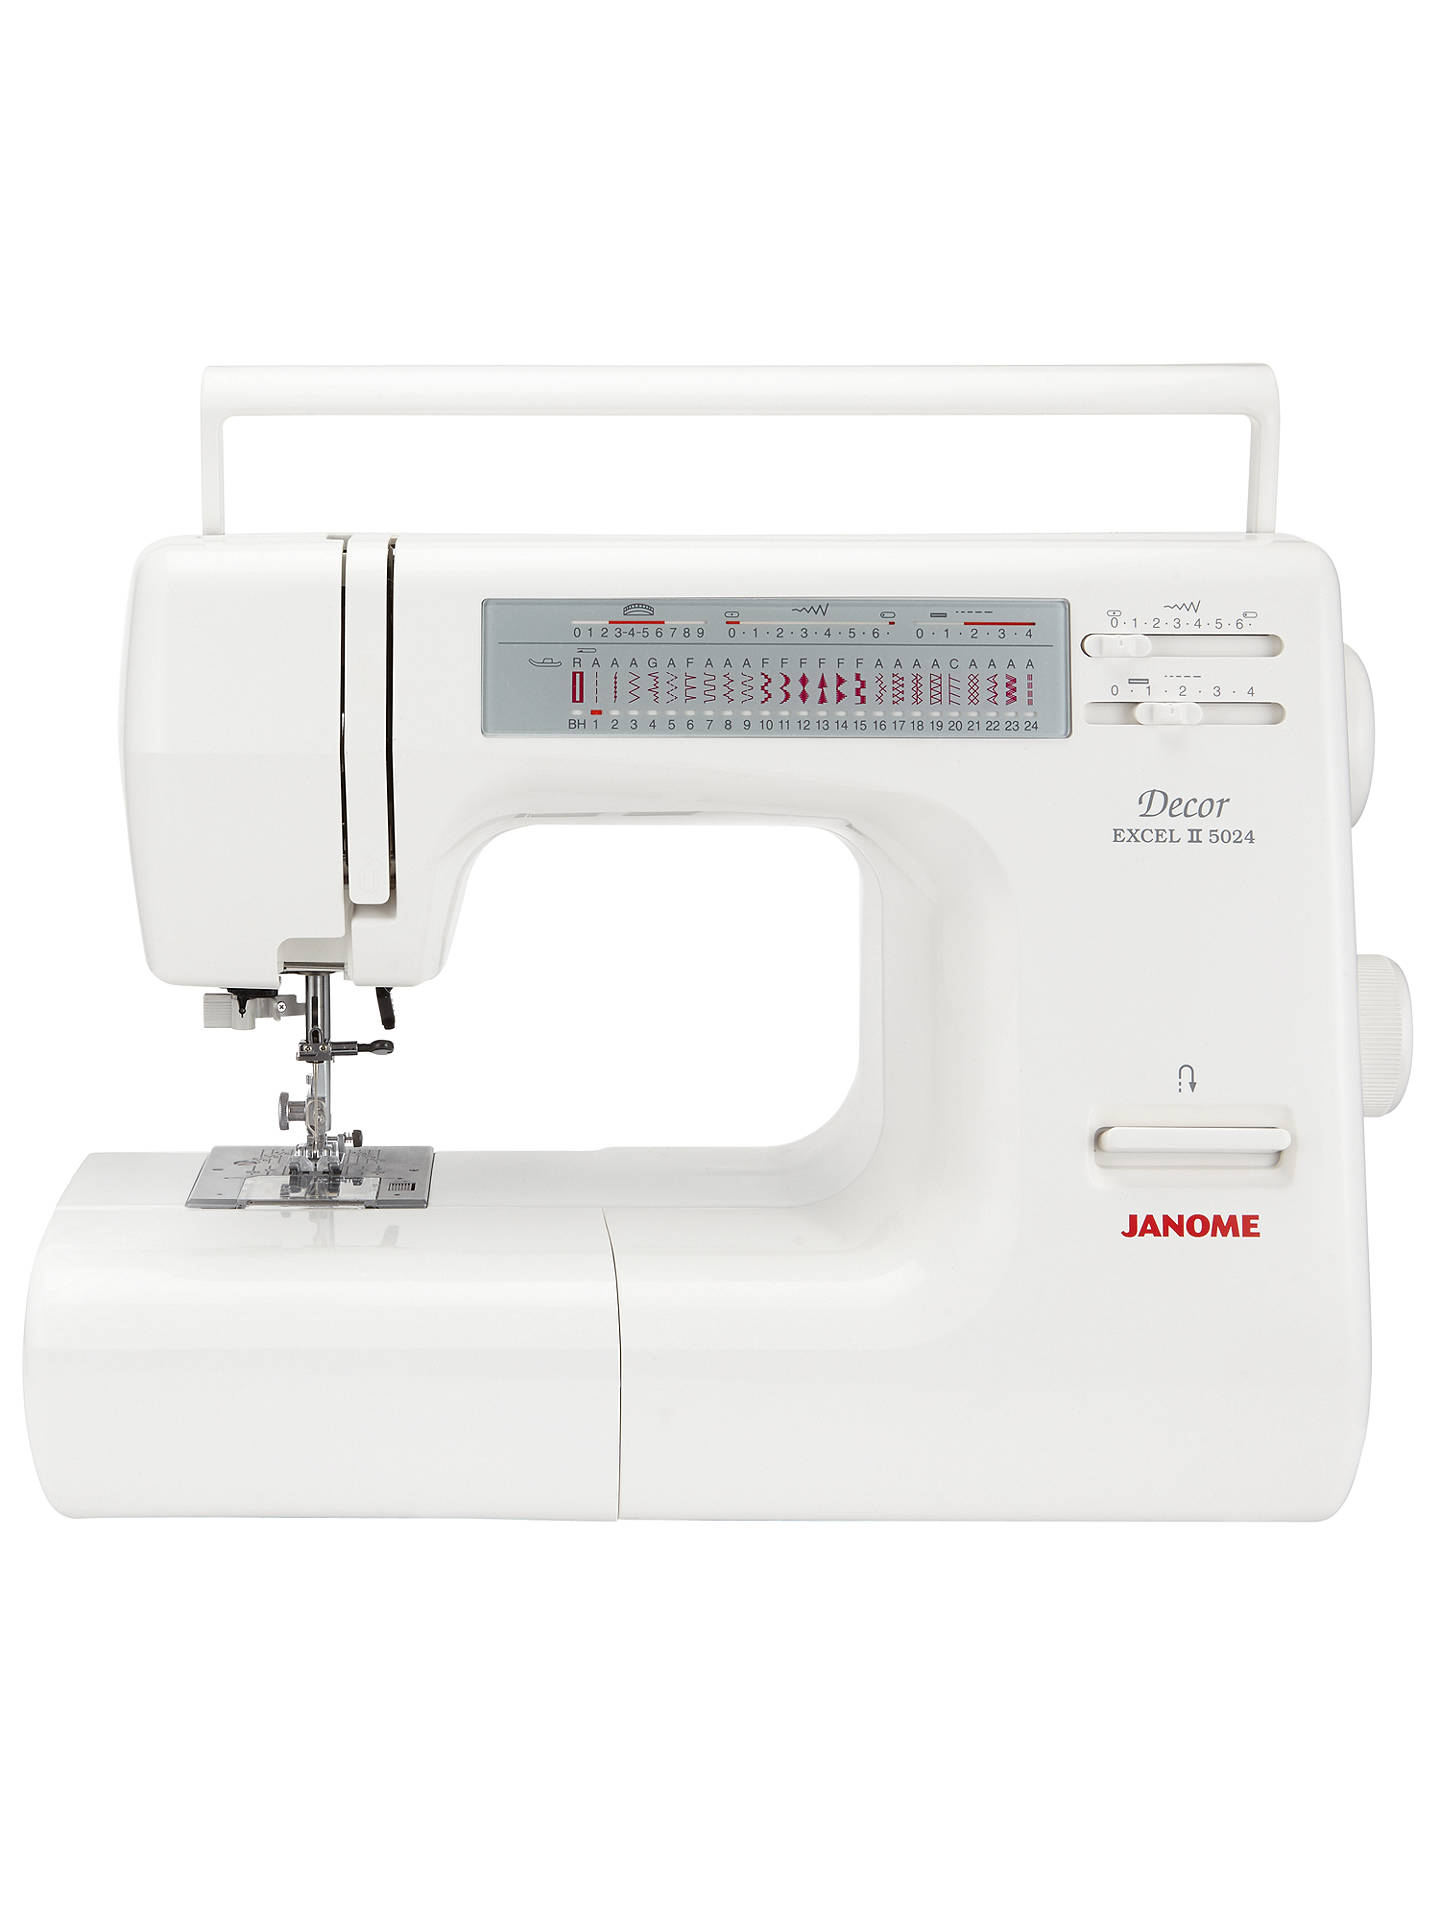 BuyJanome Excel Decor 5024 Sewing Machine Online at johnlewis.com ...